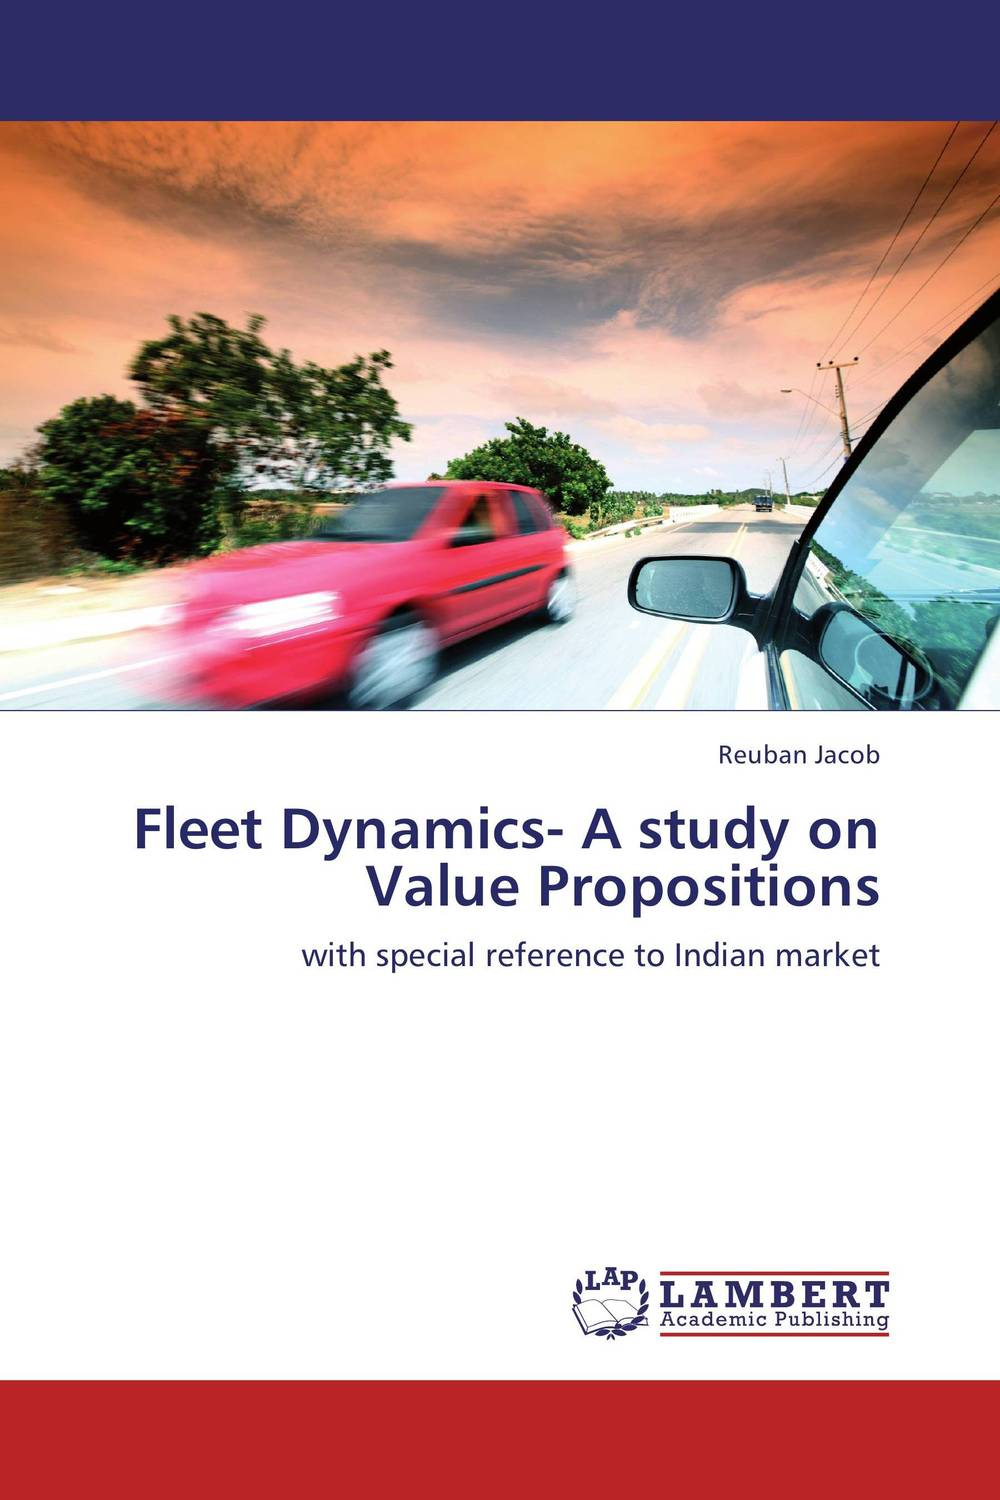 Fleet Dynamics- A study on Value Propositions kitred5l350unv35668 value kit rediform sales book red5l350 and universal standard self stick notes unv35668